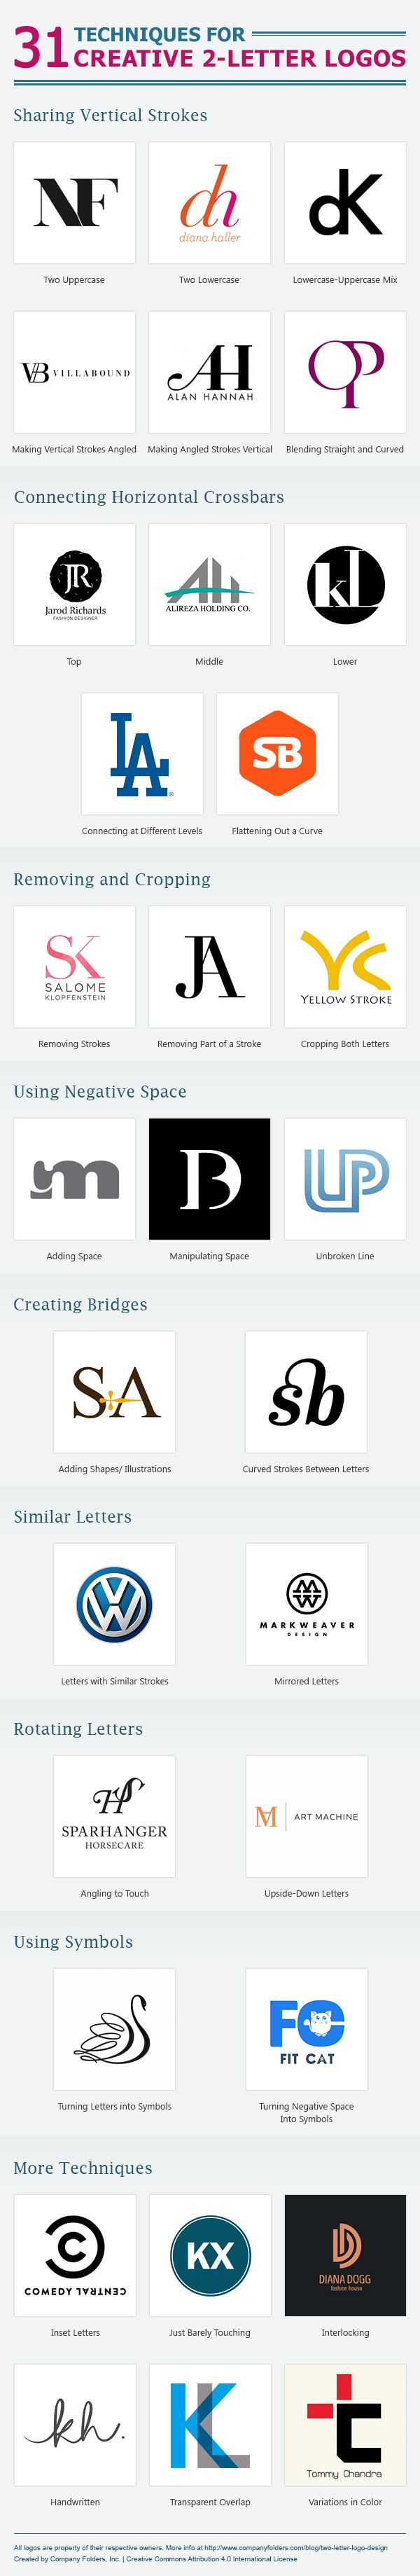 Got a 2-Letter Business Name 31 Ways to Make Your Logo More Creative